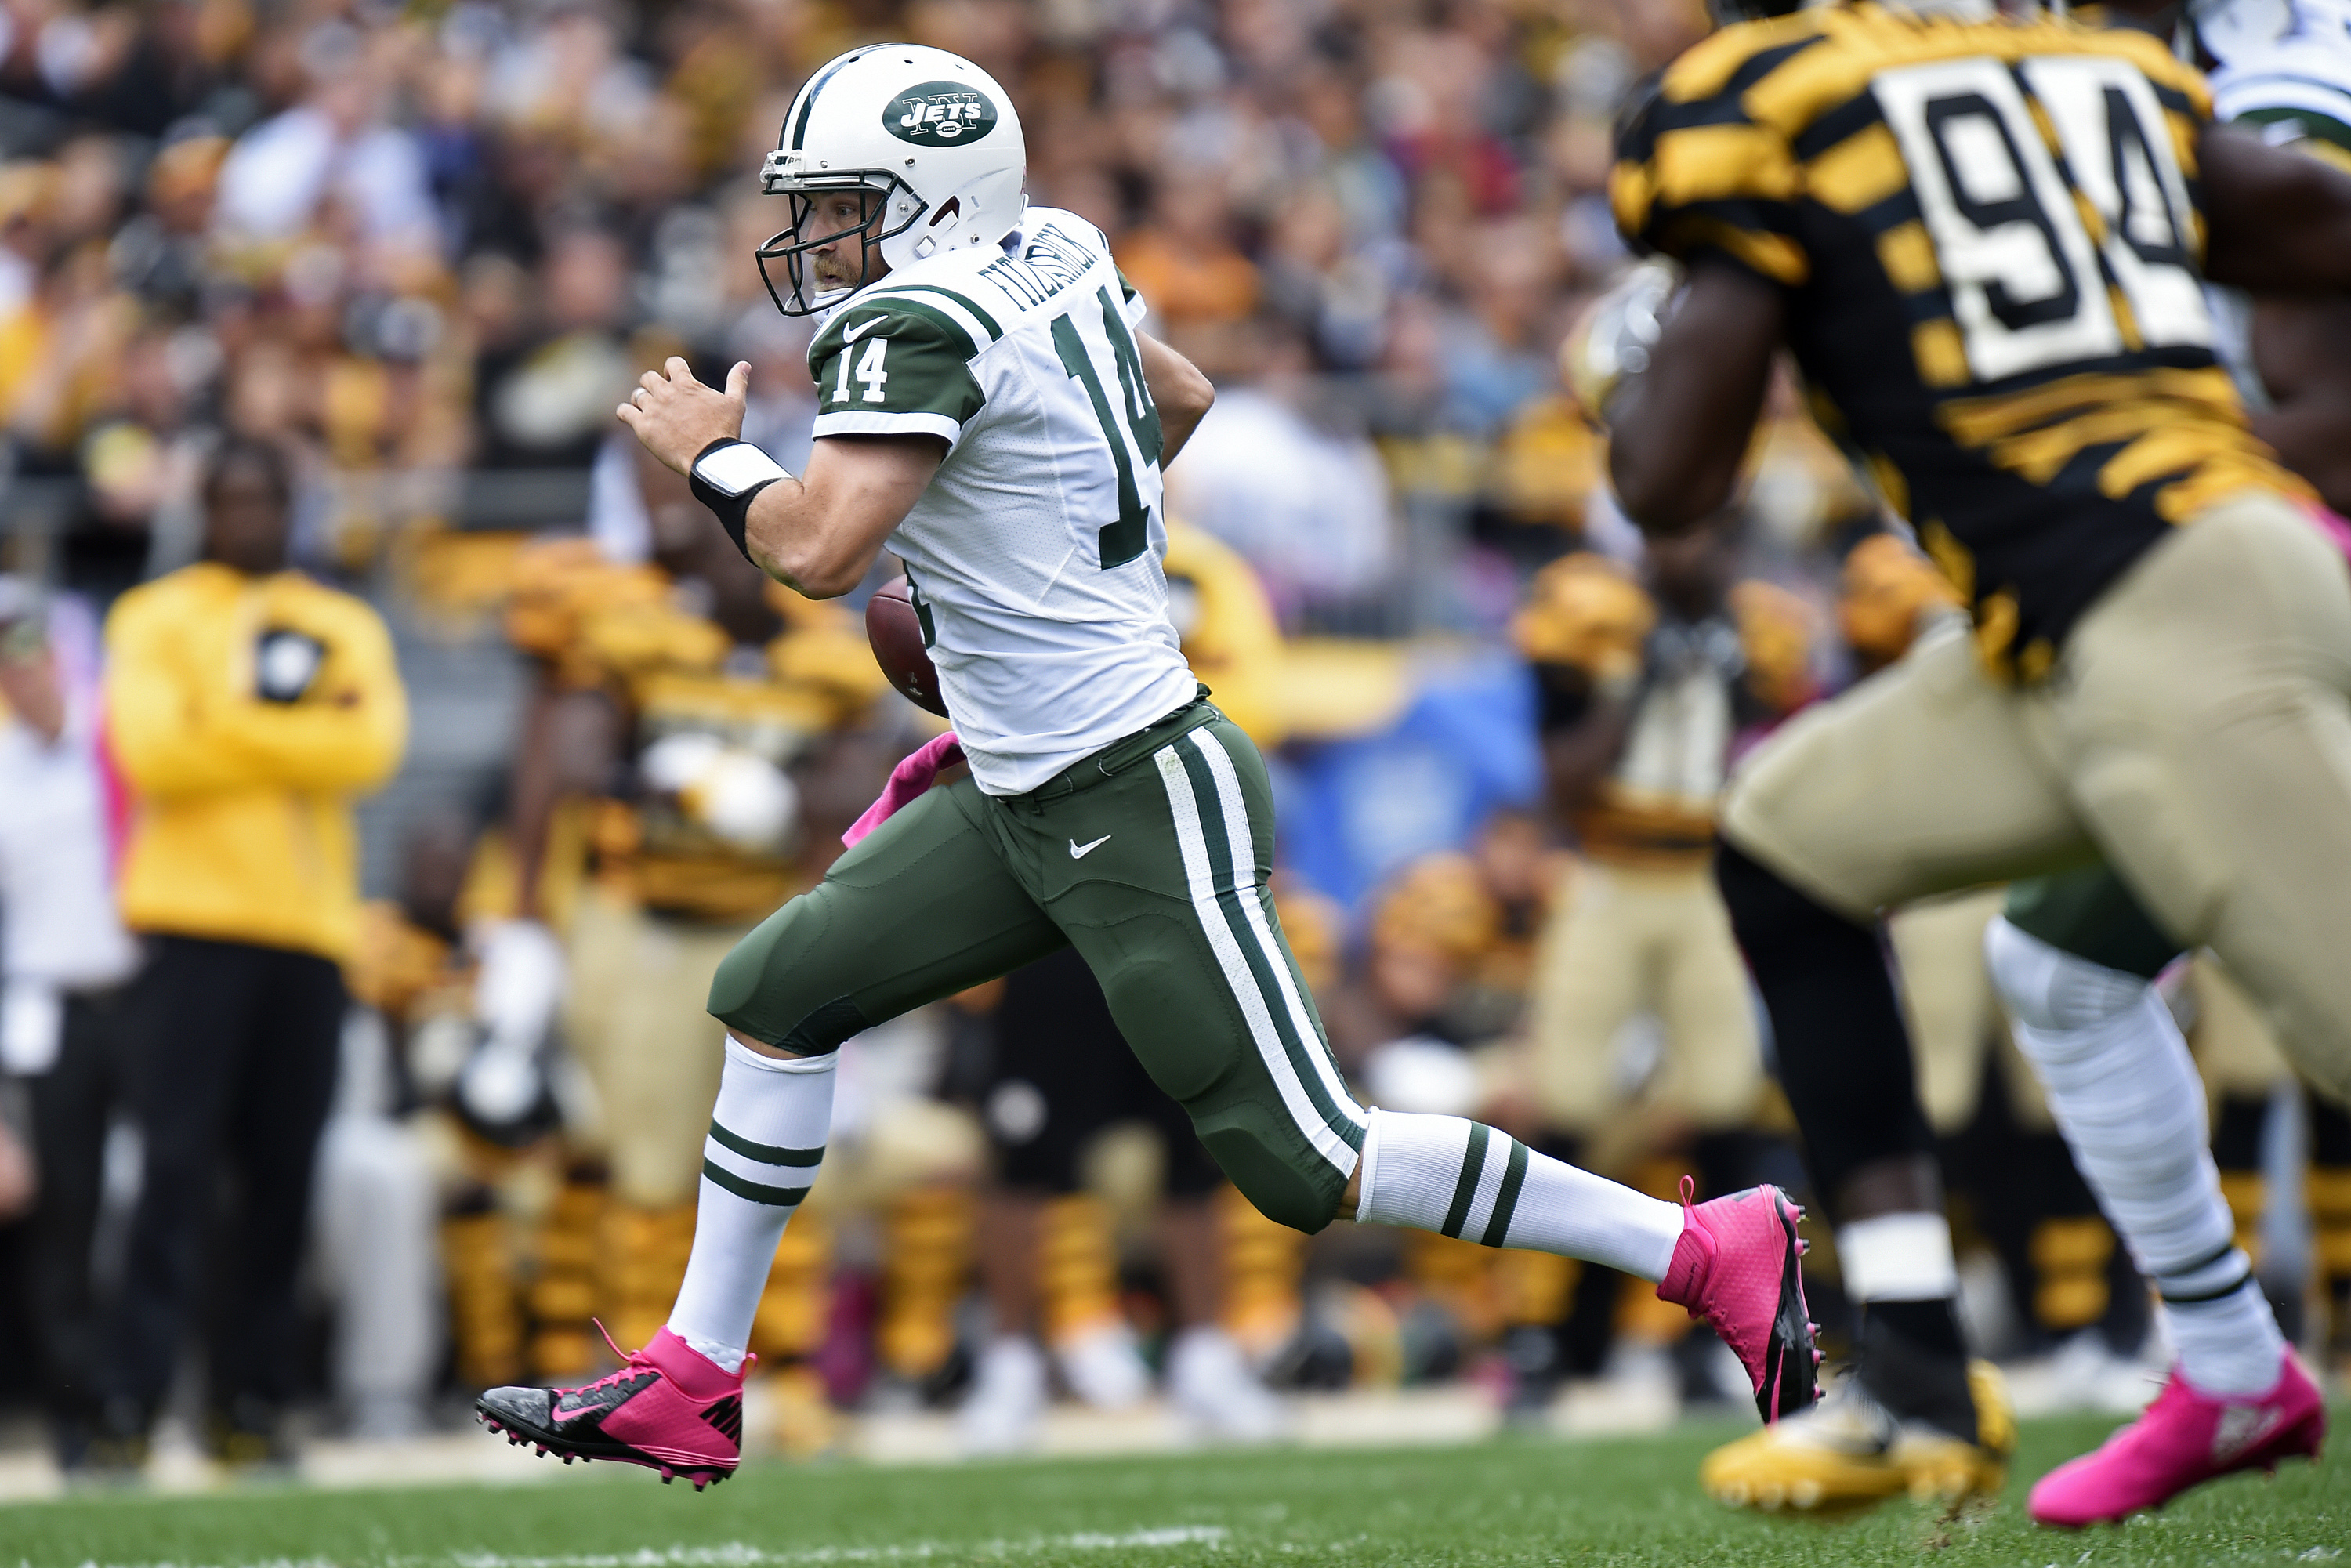 New York Jets quarterback Ryan Fitzpatrick (14) runs with the ball during the first half of an NFL football game against the Pittsburgh Steelers in Pittsburgh, Sunday, Oct. 9, 2016. (AP Photo/Don Wright)